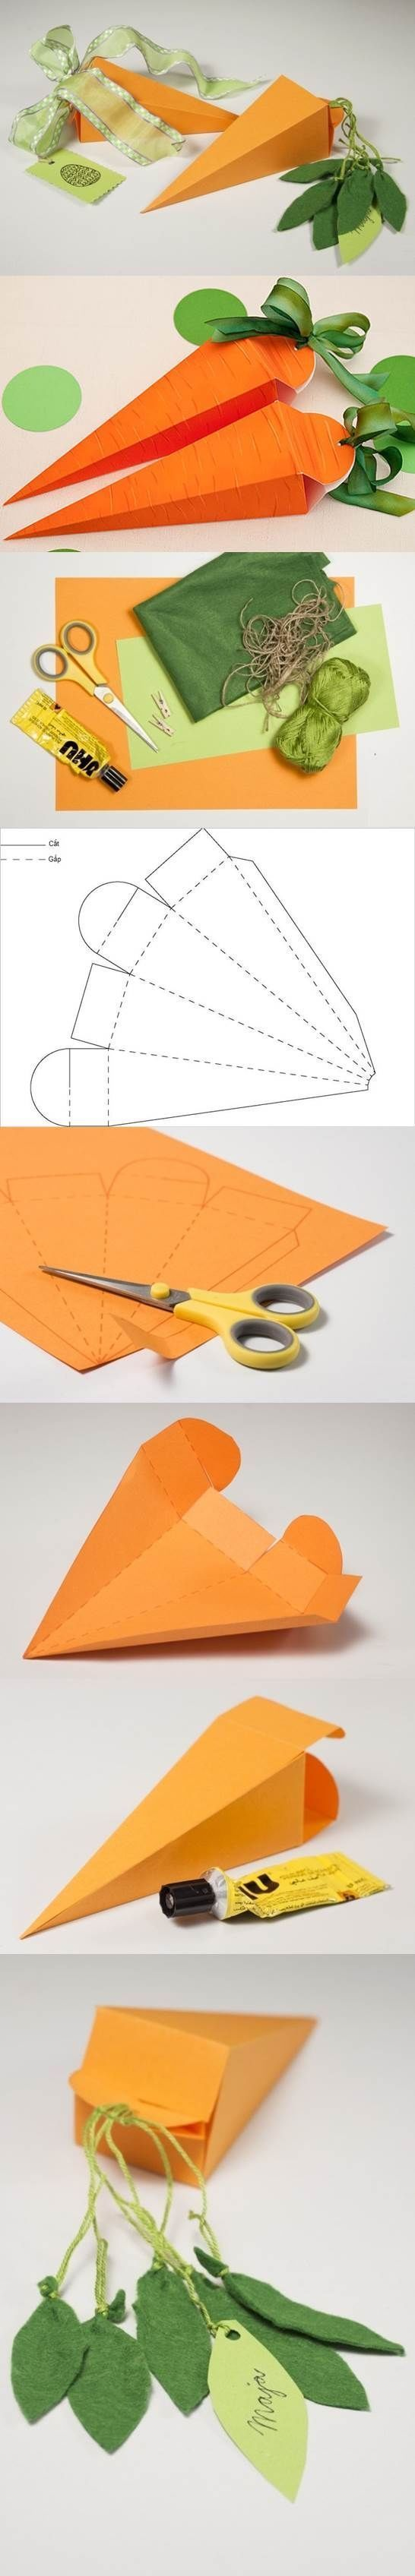 How to make a carrot gift box diy diy crafts do it yourself diy how to make a carrot gift box diy diy crafts do it yourself diy projects gift negle Gallery